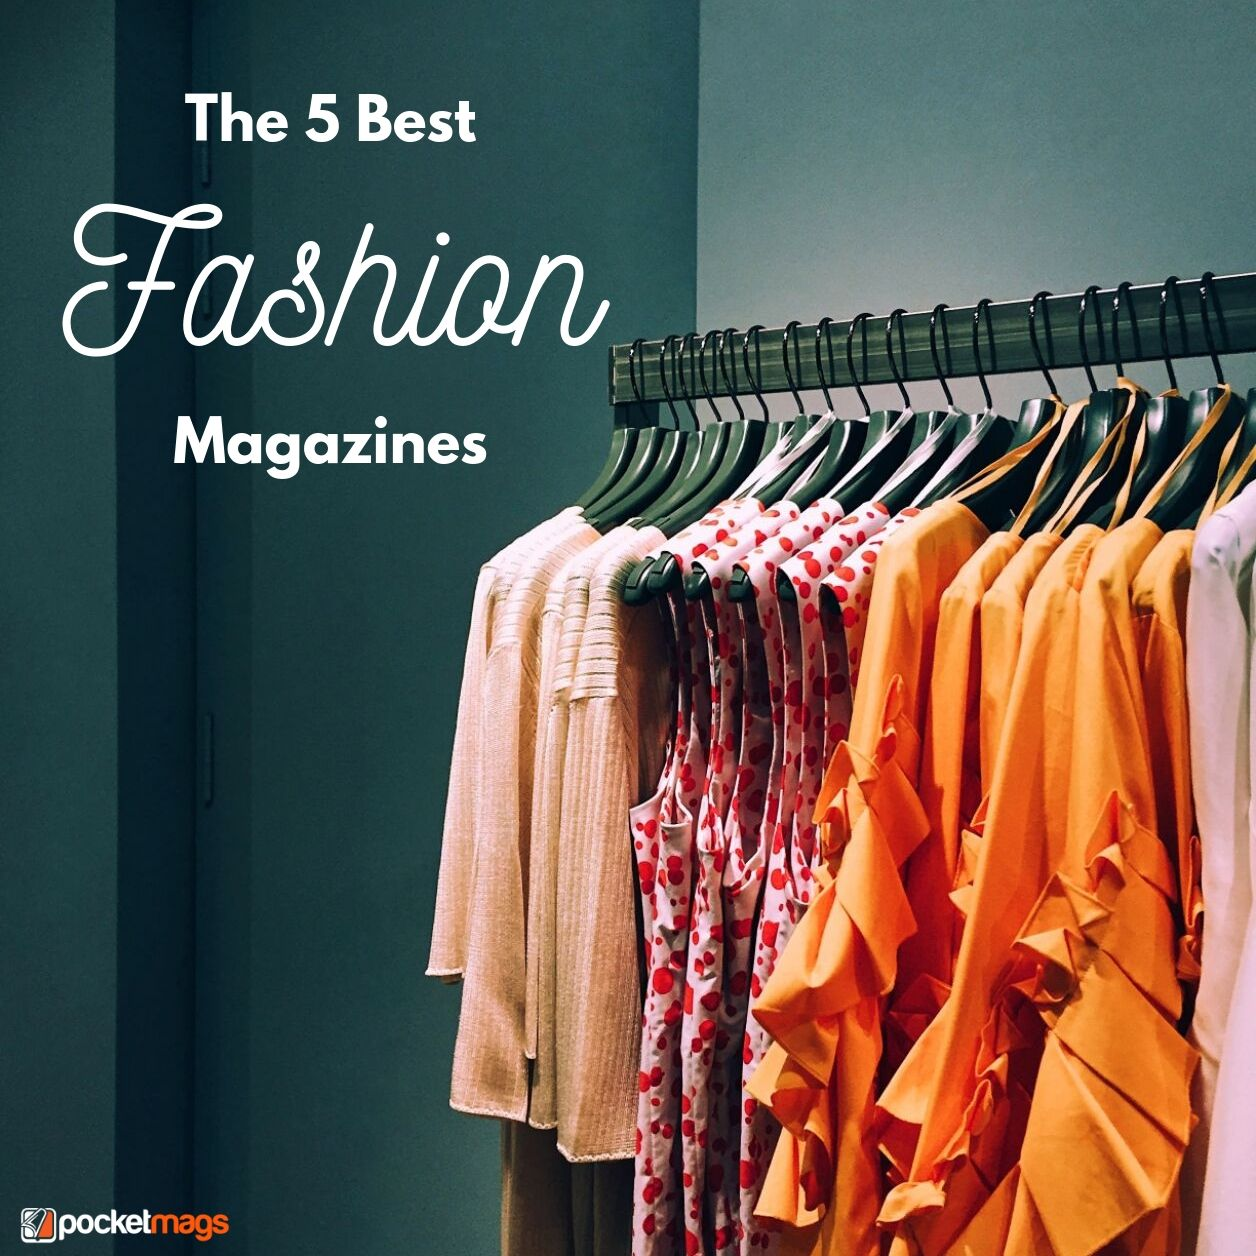 The 5 Best Fashion Magazines